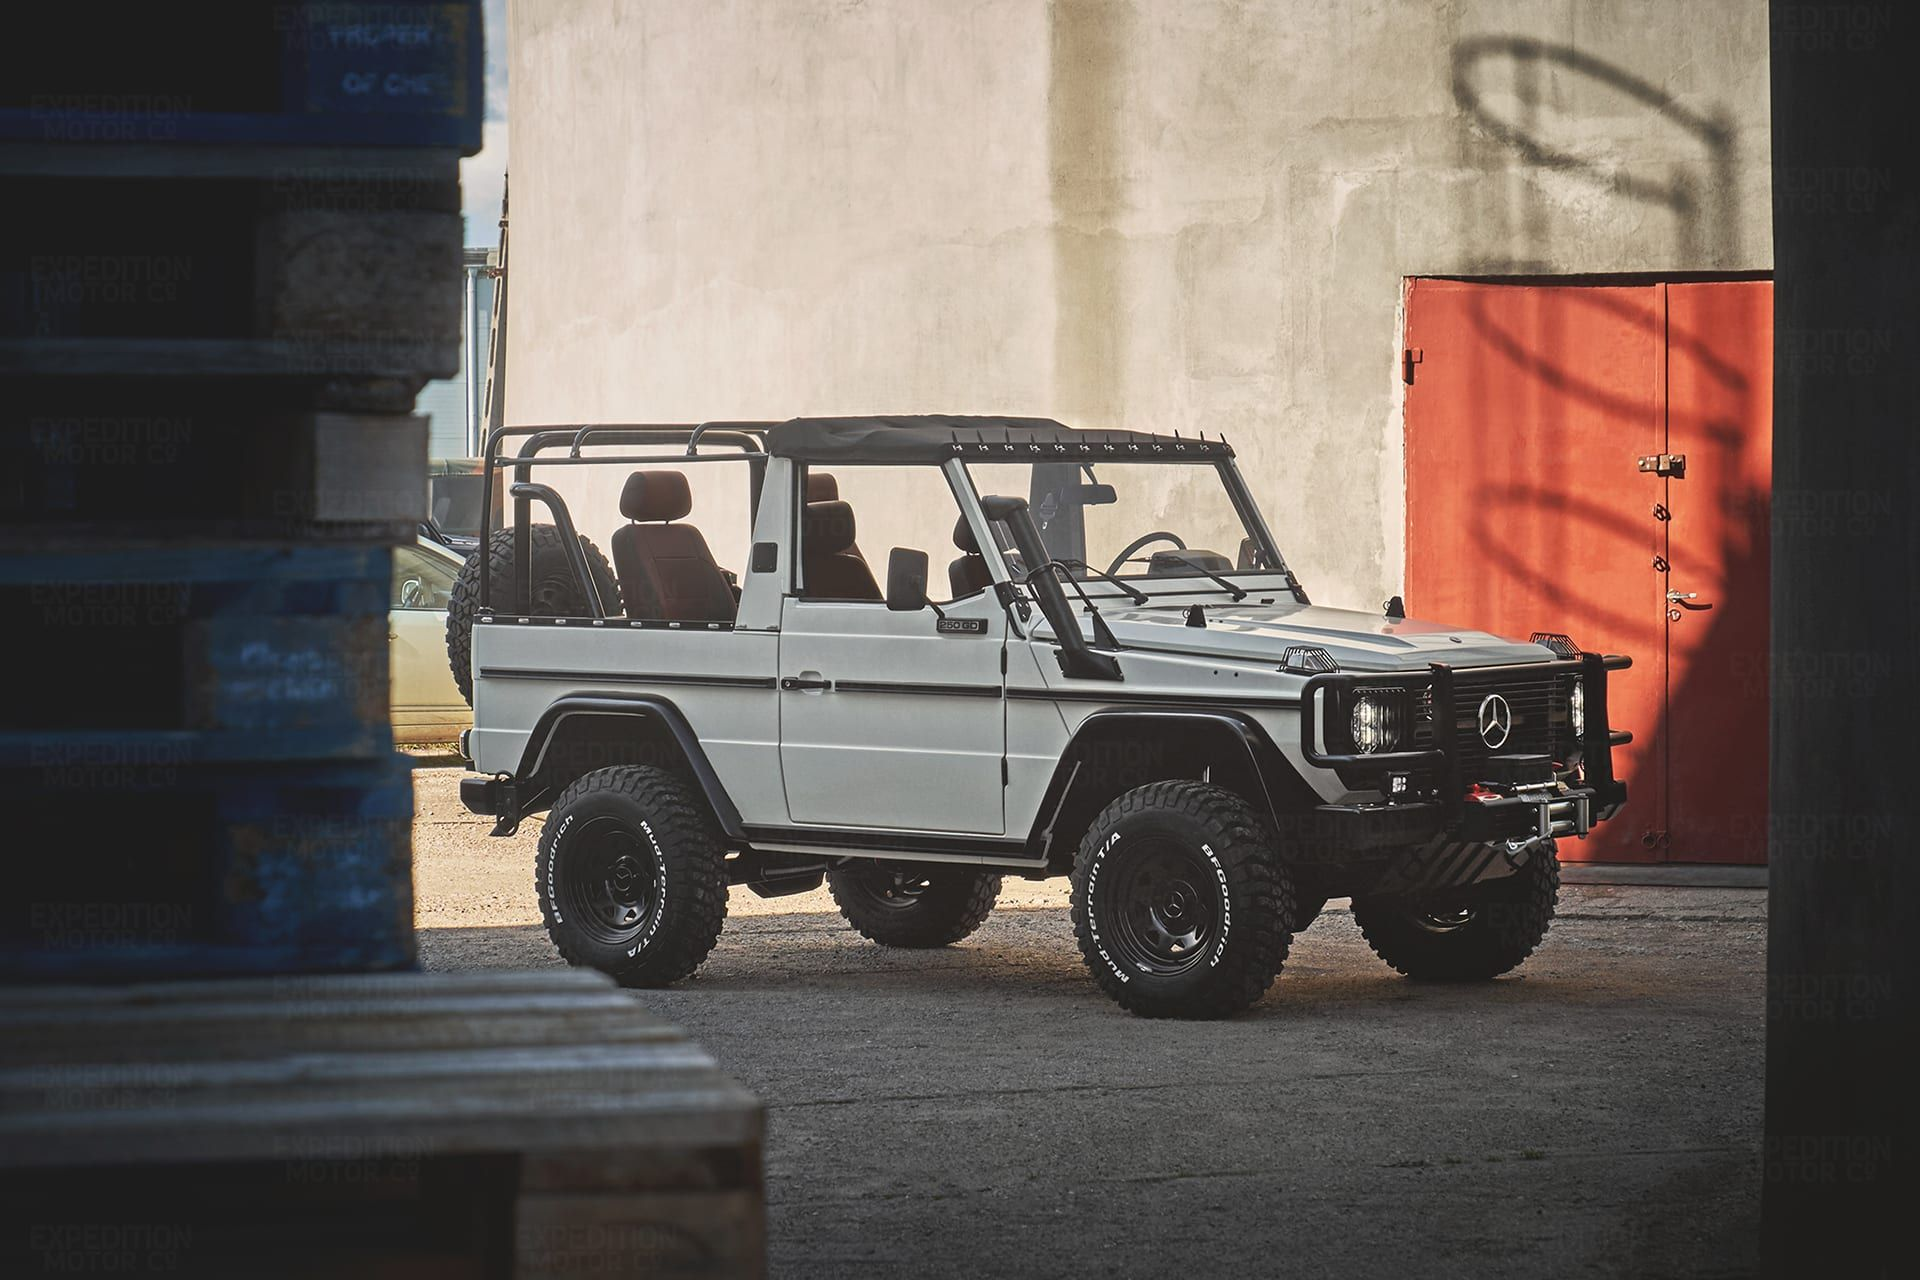 2b 013 Convertible Mercedes G 250 086737 In 2020 Land Rover Defender Land Rover Defender 90 For Sale